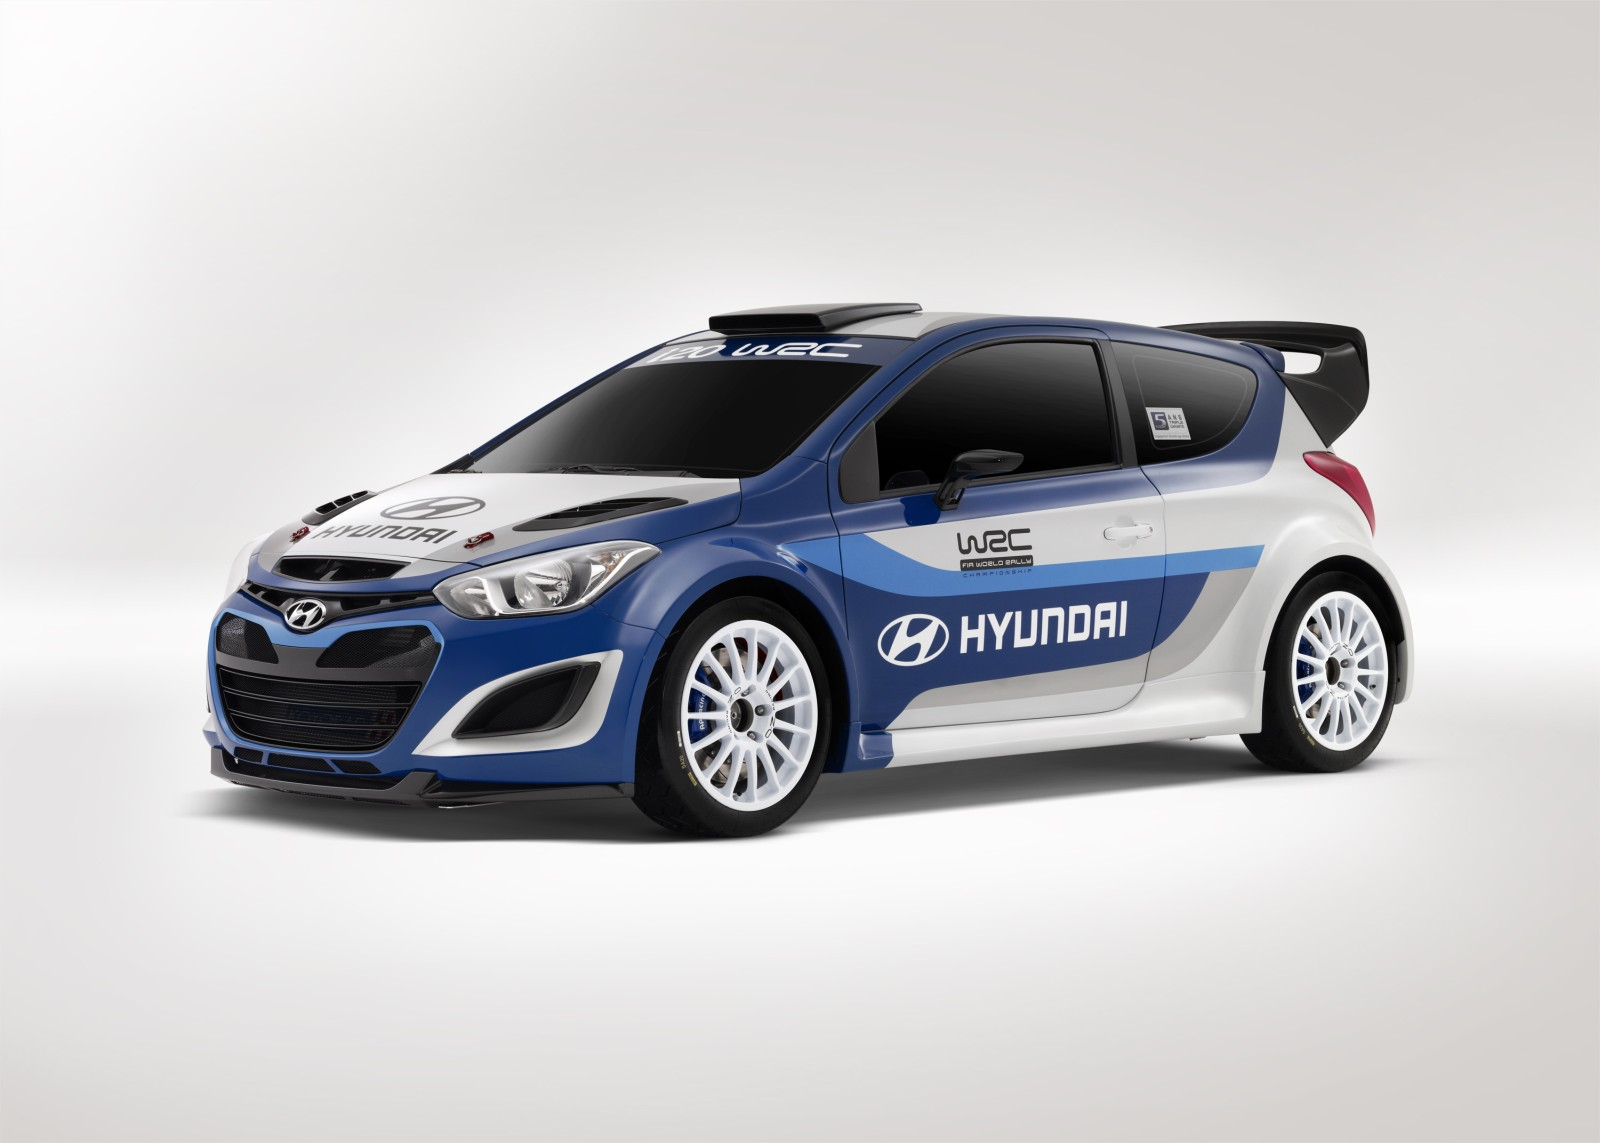 Hyundai To Rejoin The WRC With The I20 World Rally Car